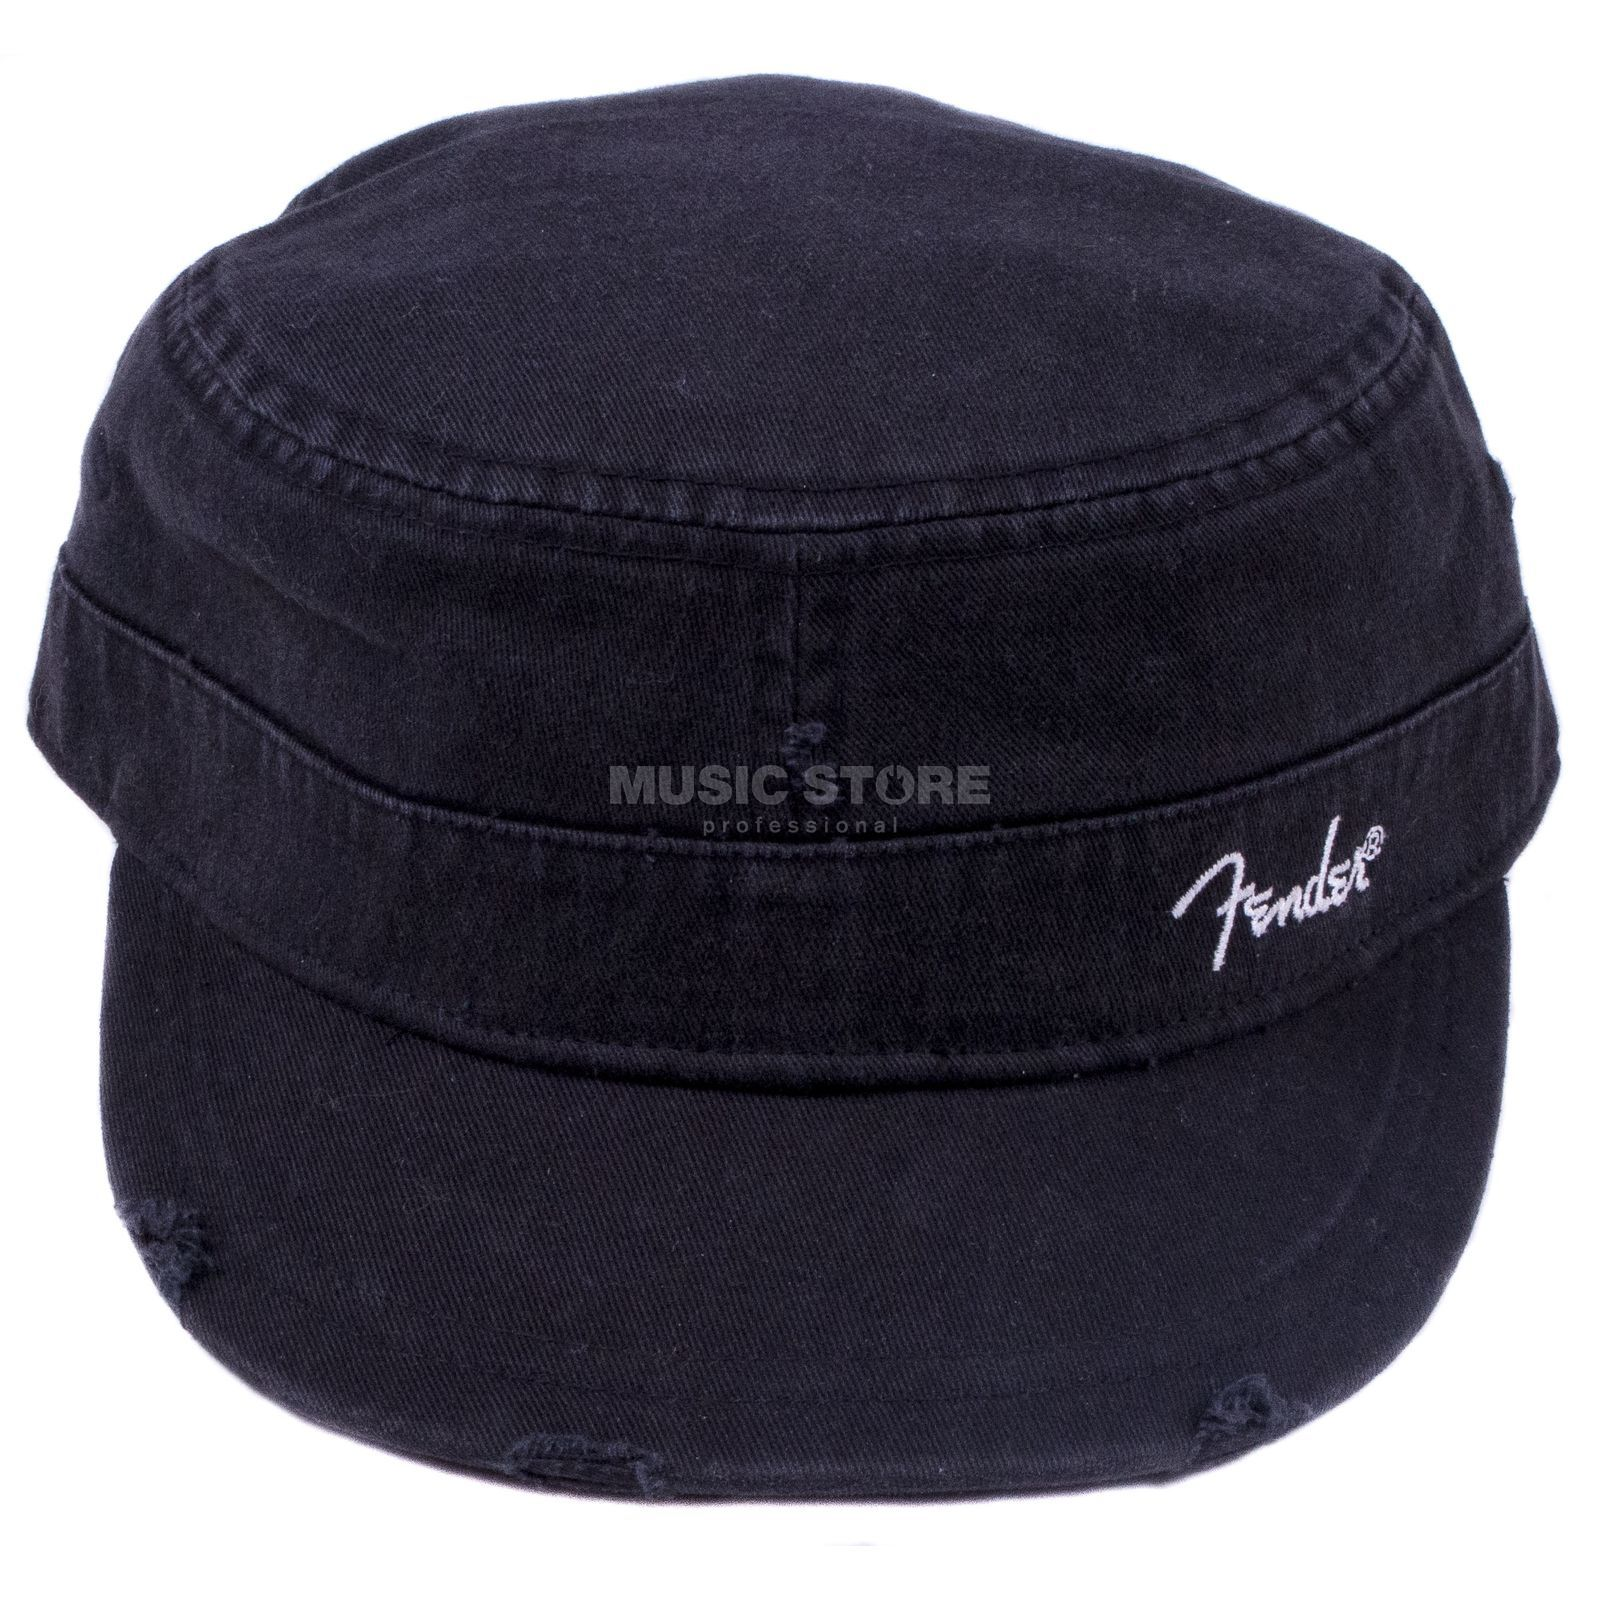 Fender Military Cap L/XL Black Produktbillede